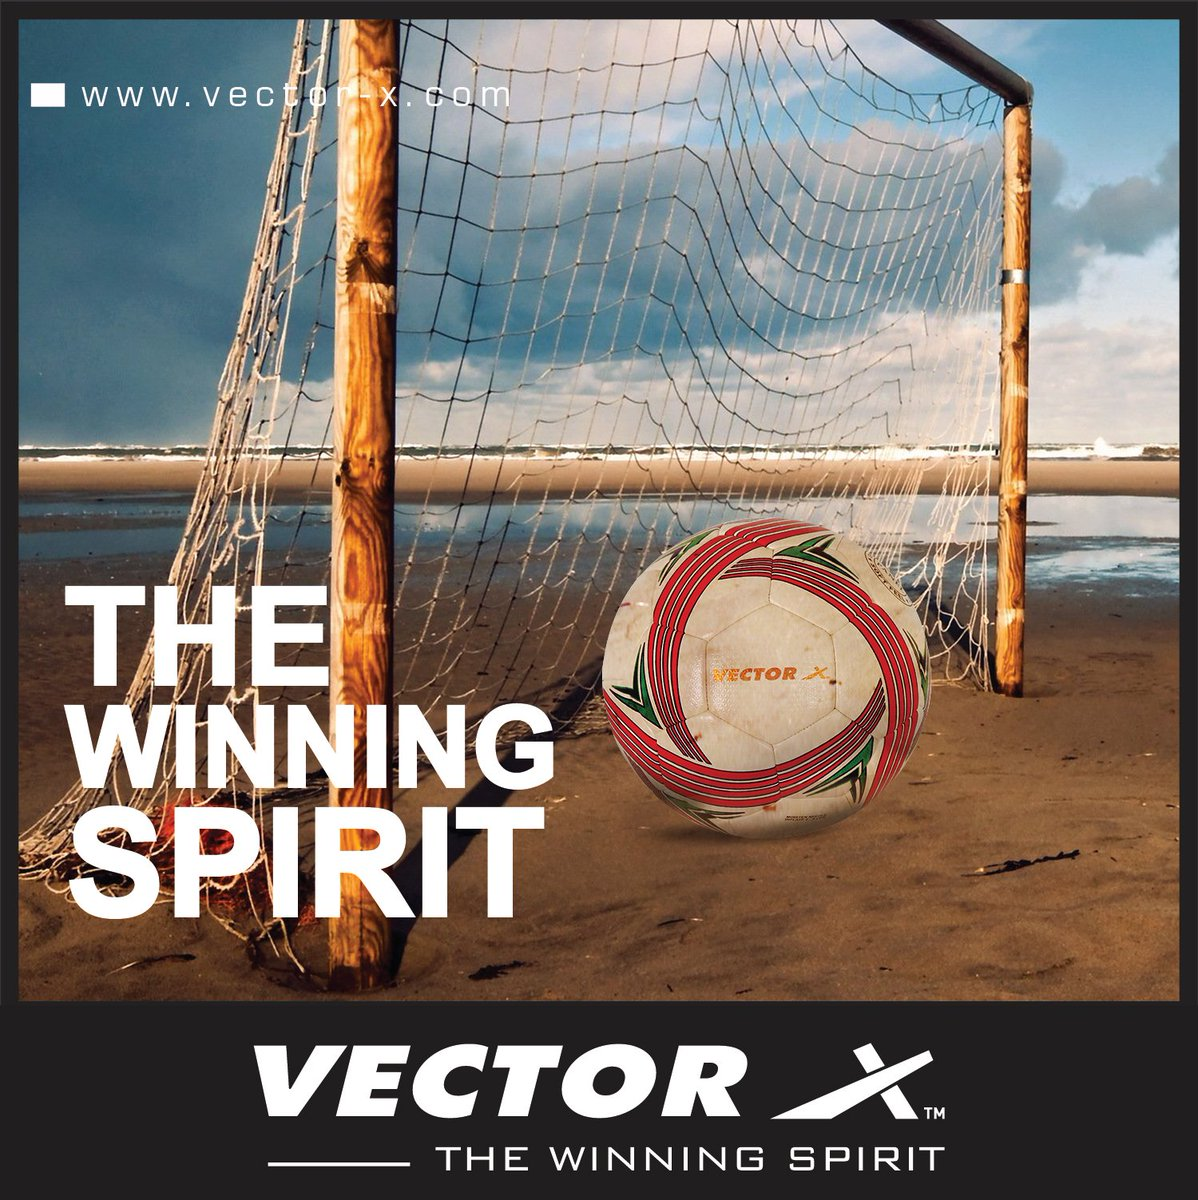 That weather can&#39;t stop you from hitting the goal of your life #VectorX #Sports #FootBall #Aerodynamic #NylonWounded #RubberUpper #Sportsman <br>http://pic.twitter.com/kUcFj7JFio